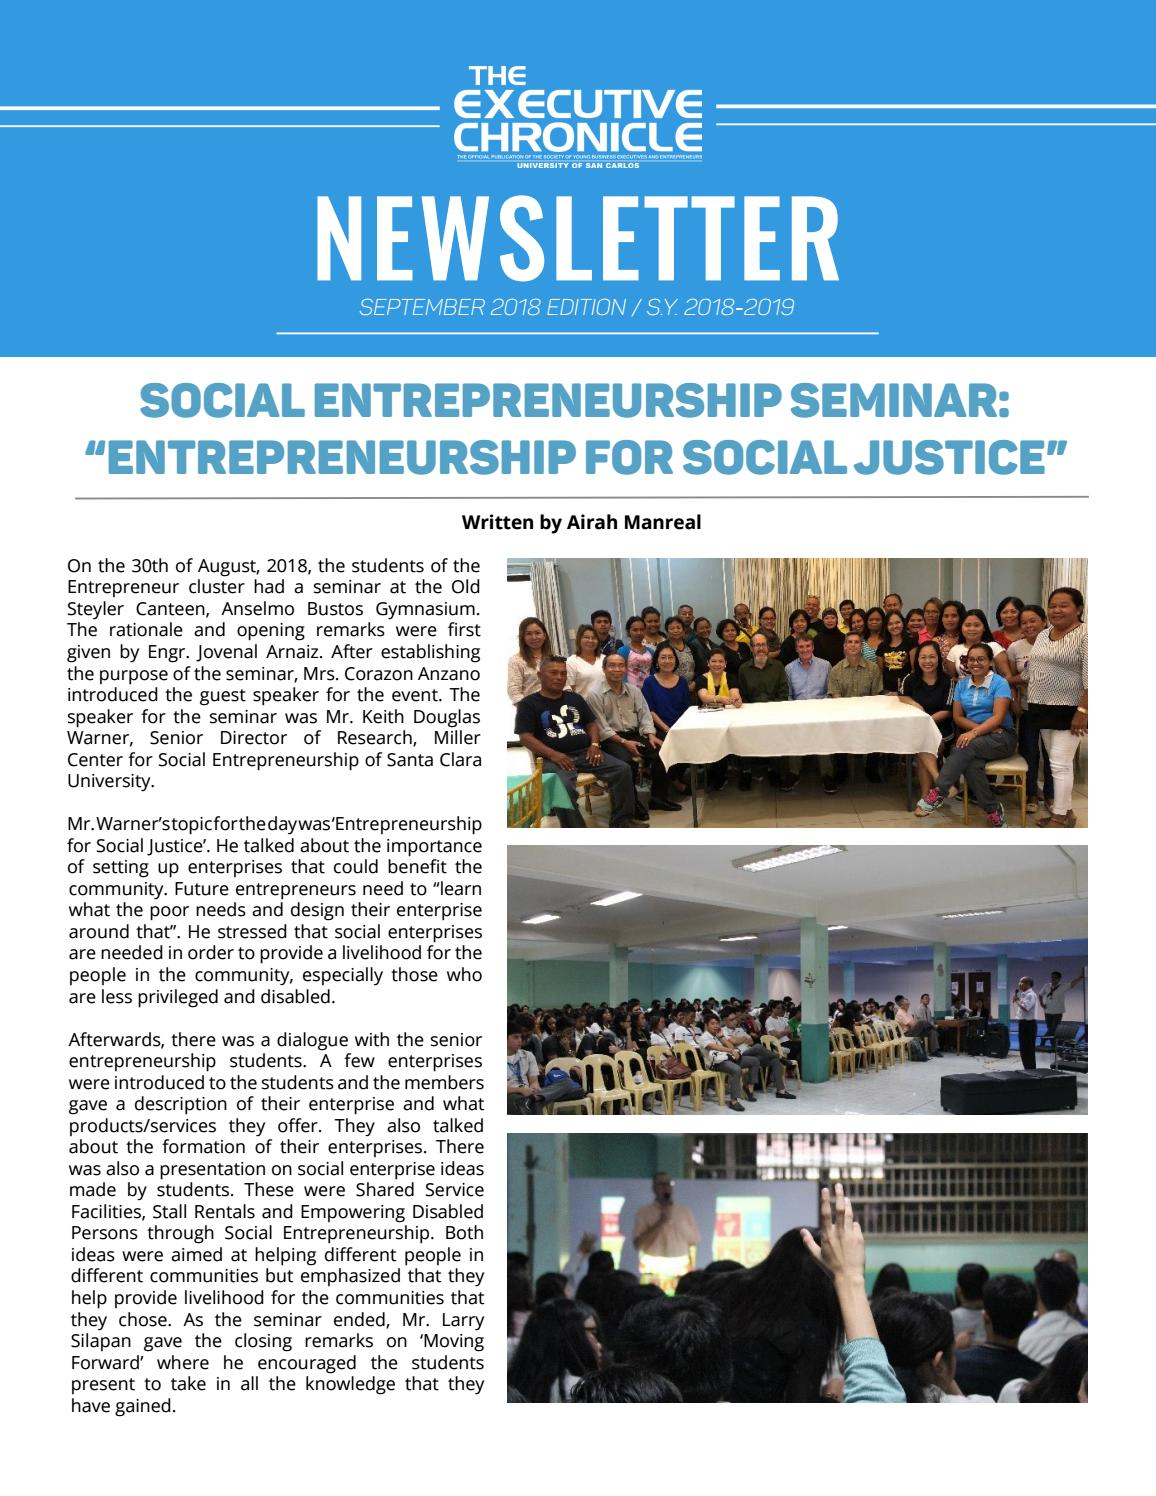 The Executive Chronicle - September 2018 Newsletter by The